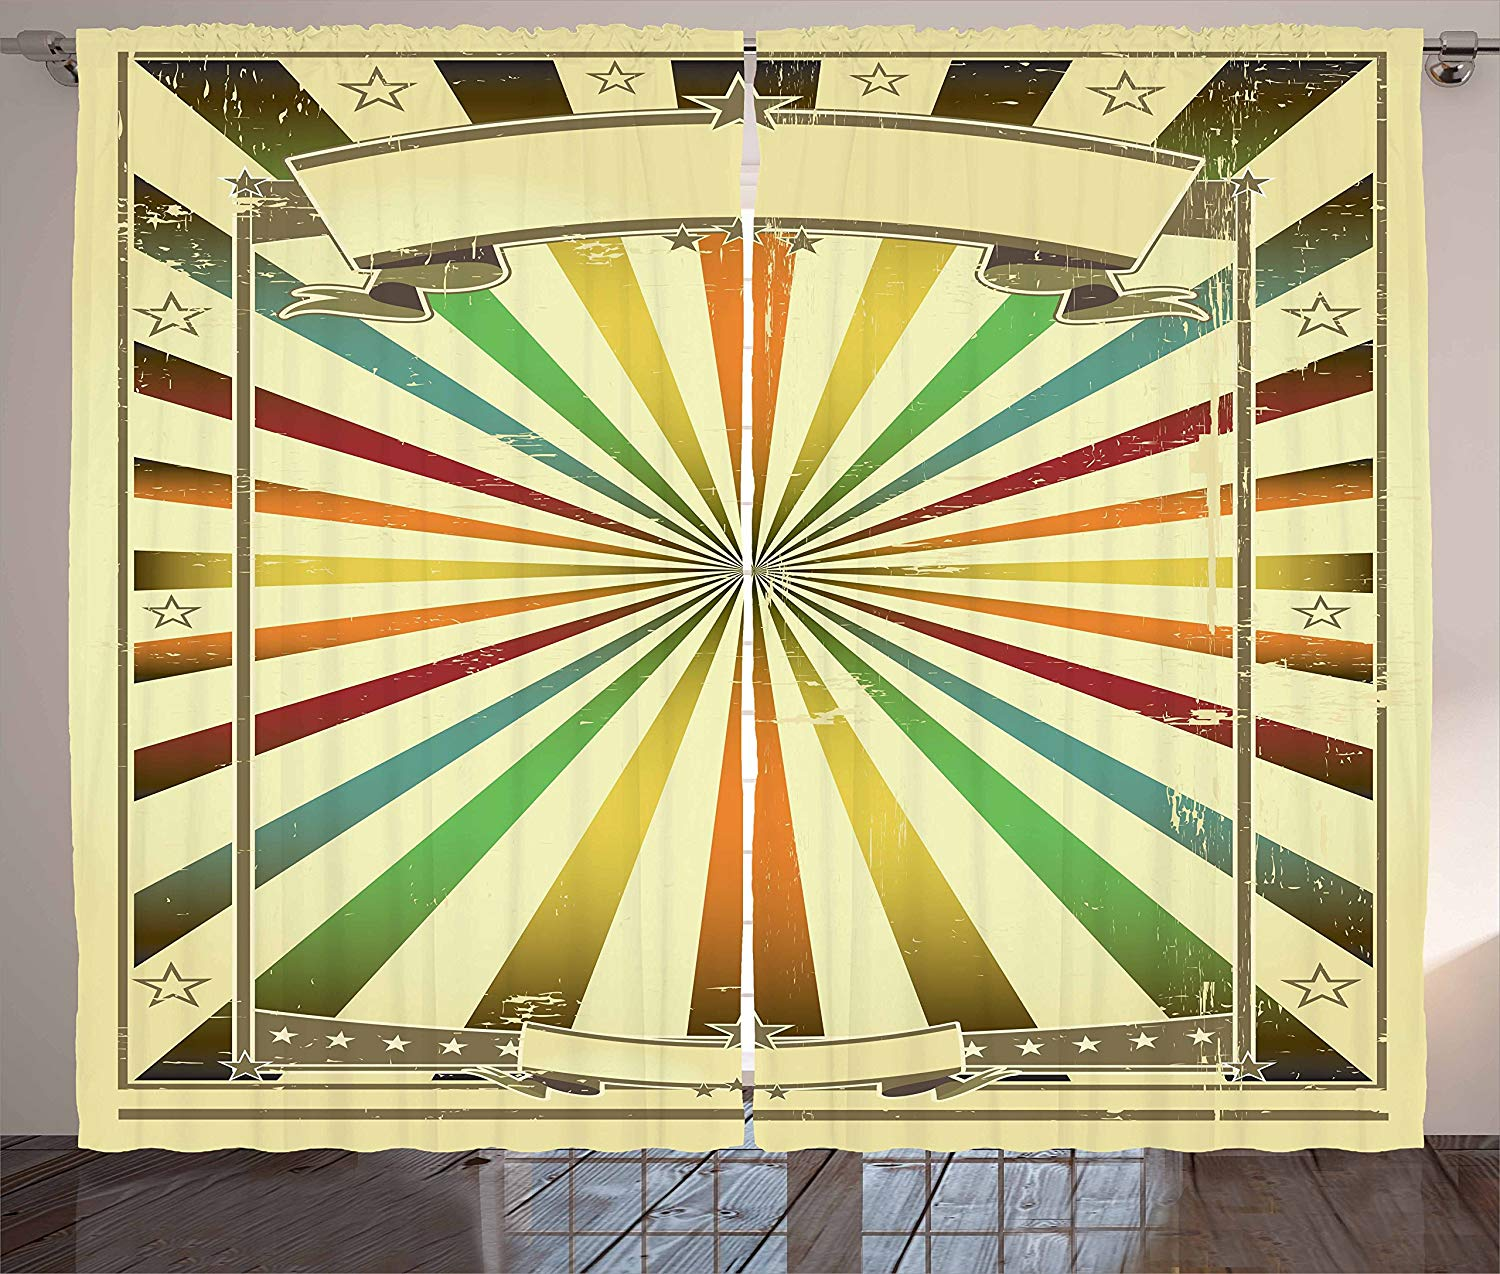 Vintage Rainbow Curtains Colorful Burst Of Lines With Poster Design With Stars Circus Illustration Living Room Bedroom Window